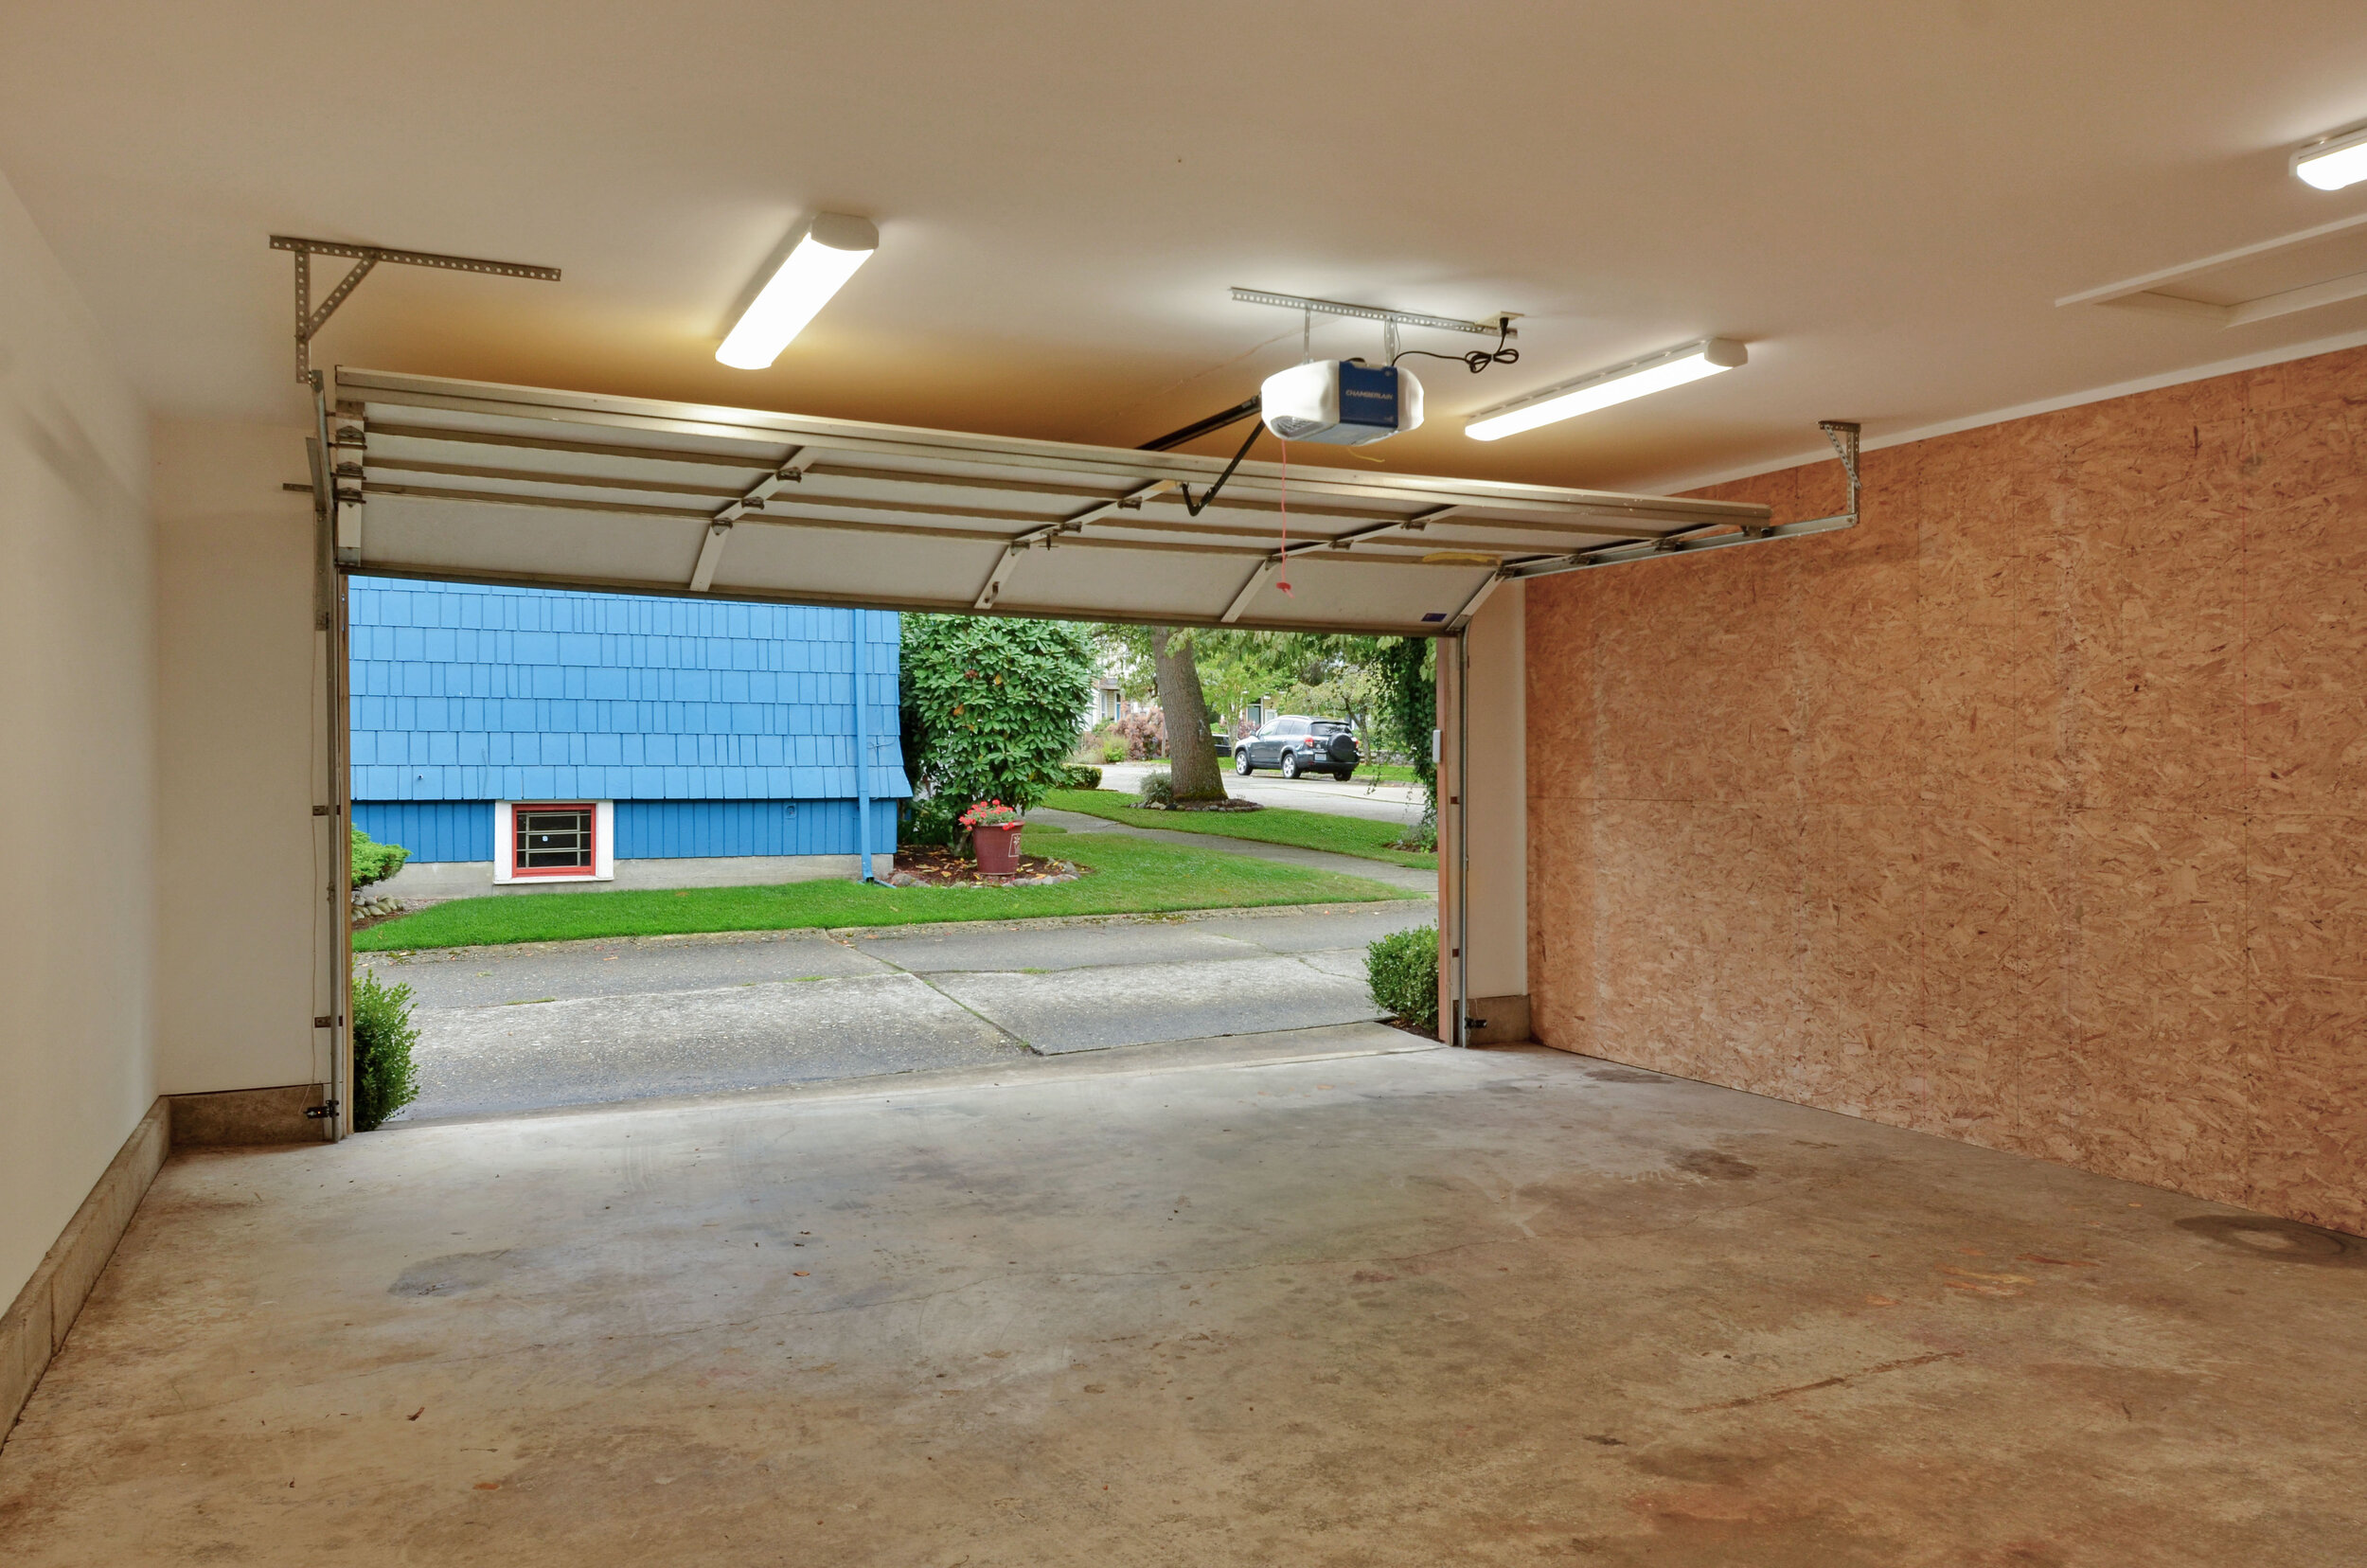 An automatic door opens from the paved alley into a clean bright space. A window on the east wall of the garage overlooks the back yard and garden.